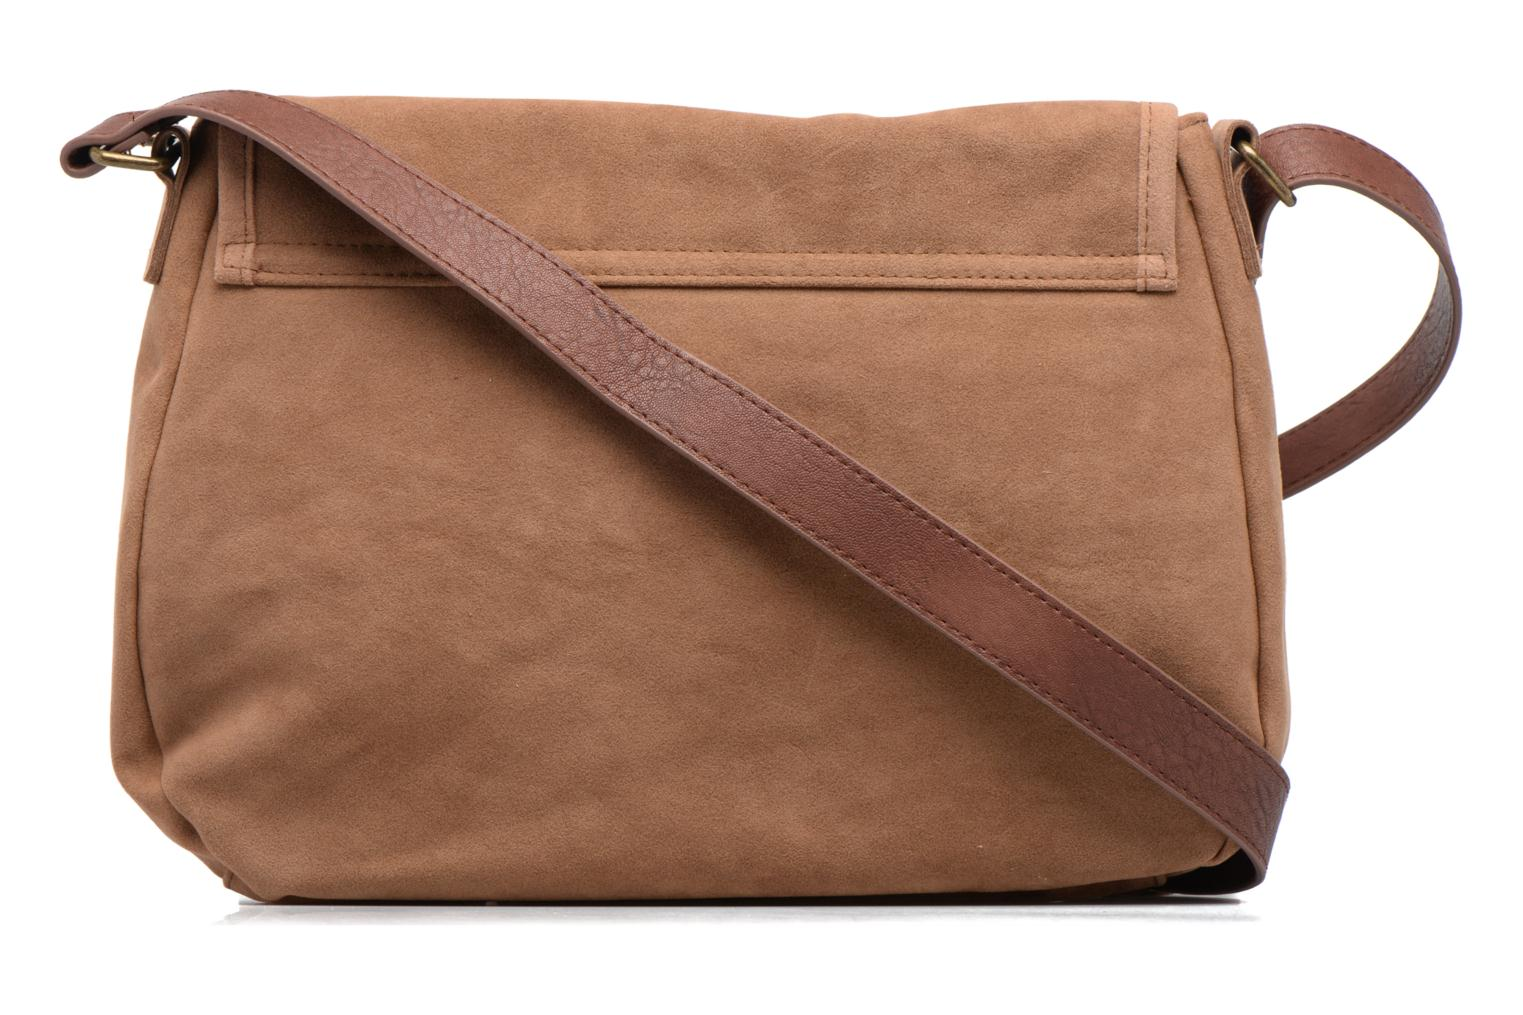 Sacs à main Rip Curl Talamanca suede Shoulder bag Marron vue face